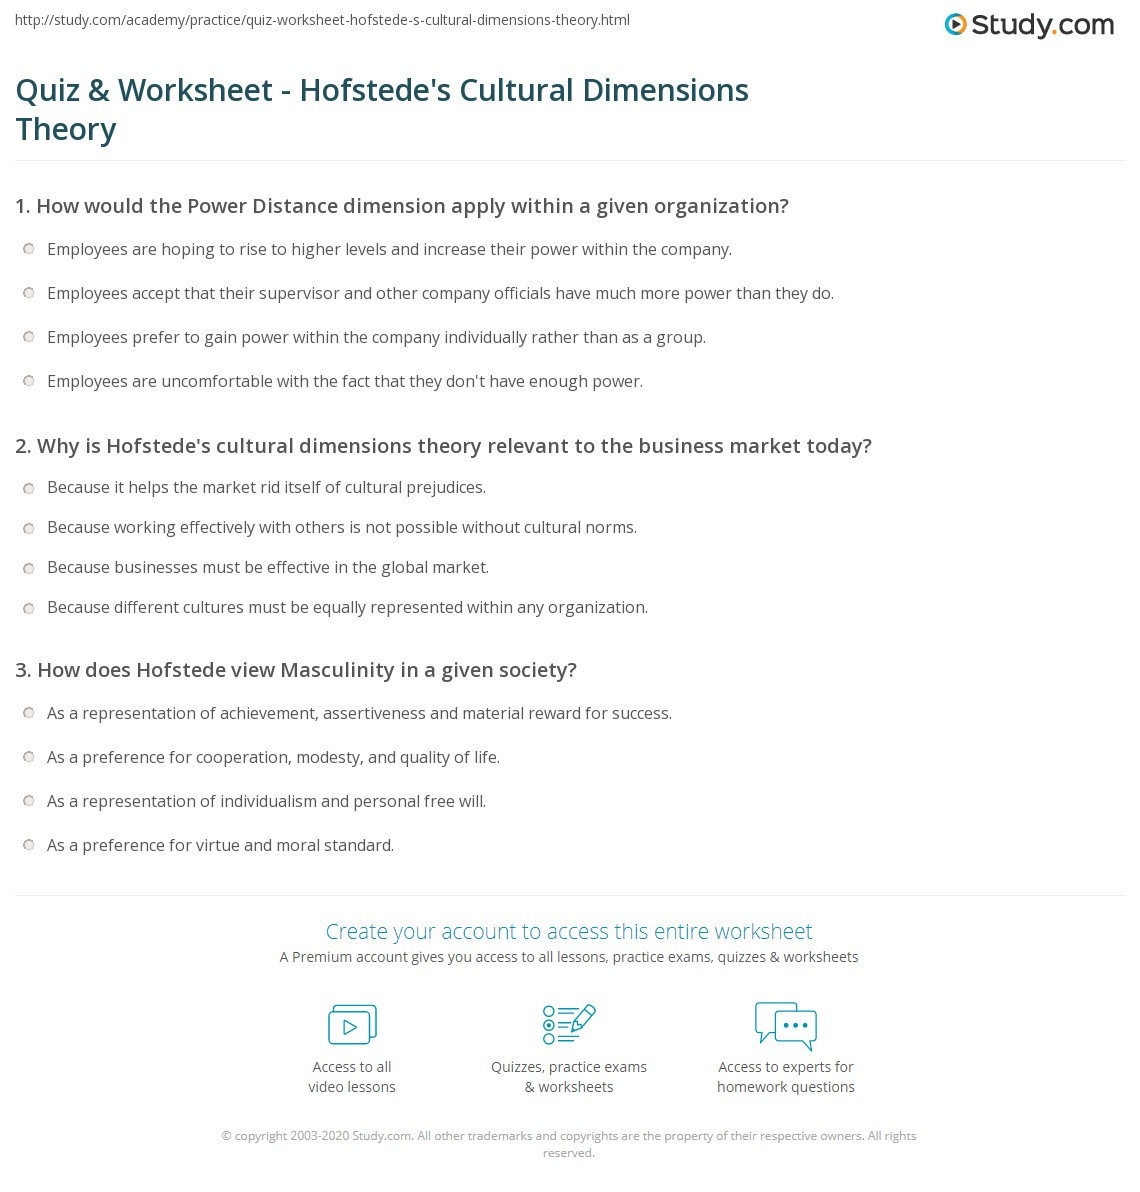 hofstede questionnaire Gerard hendrik (geert) hofstede (born 2 october 1928) is a dutch social  psychologist, former  at imede, he administered a selection of ibm  questionnaire items to his course participants, who were international managers  from over 30.